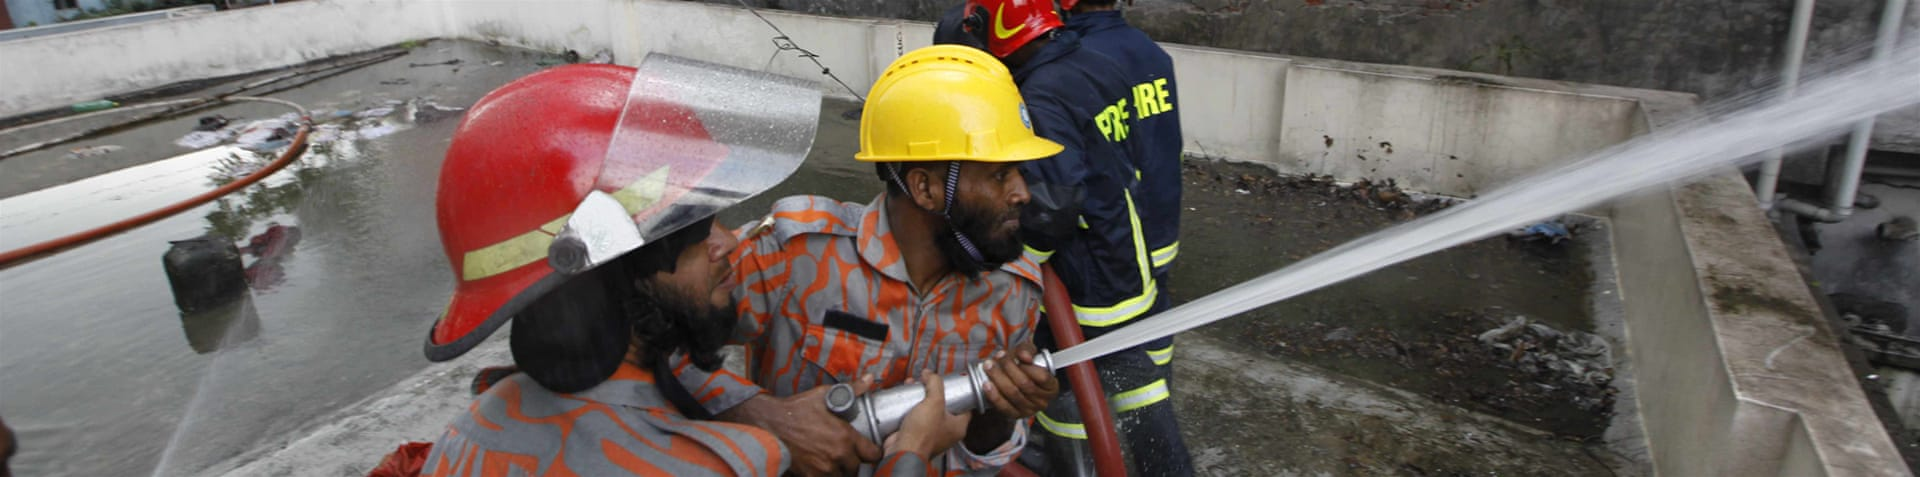 Bangladesh factory engulfed by fire, 24 dead - News from ...